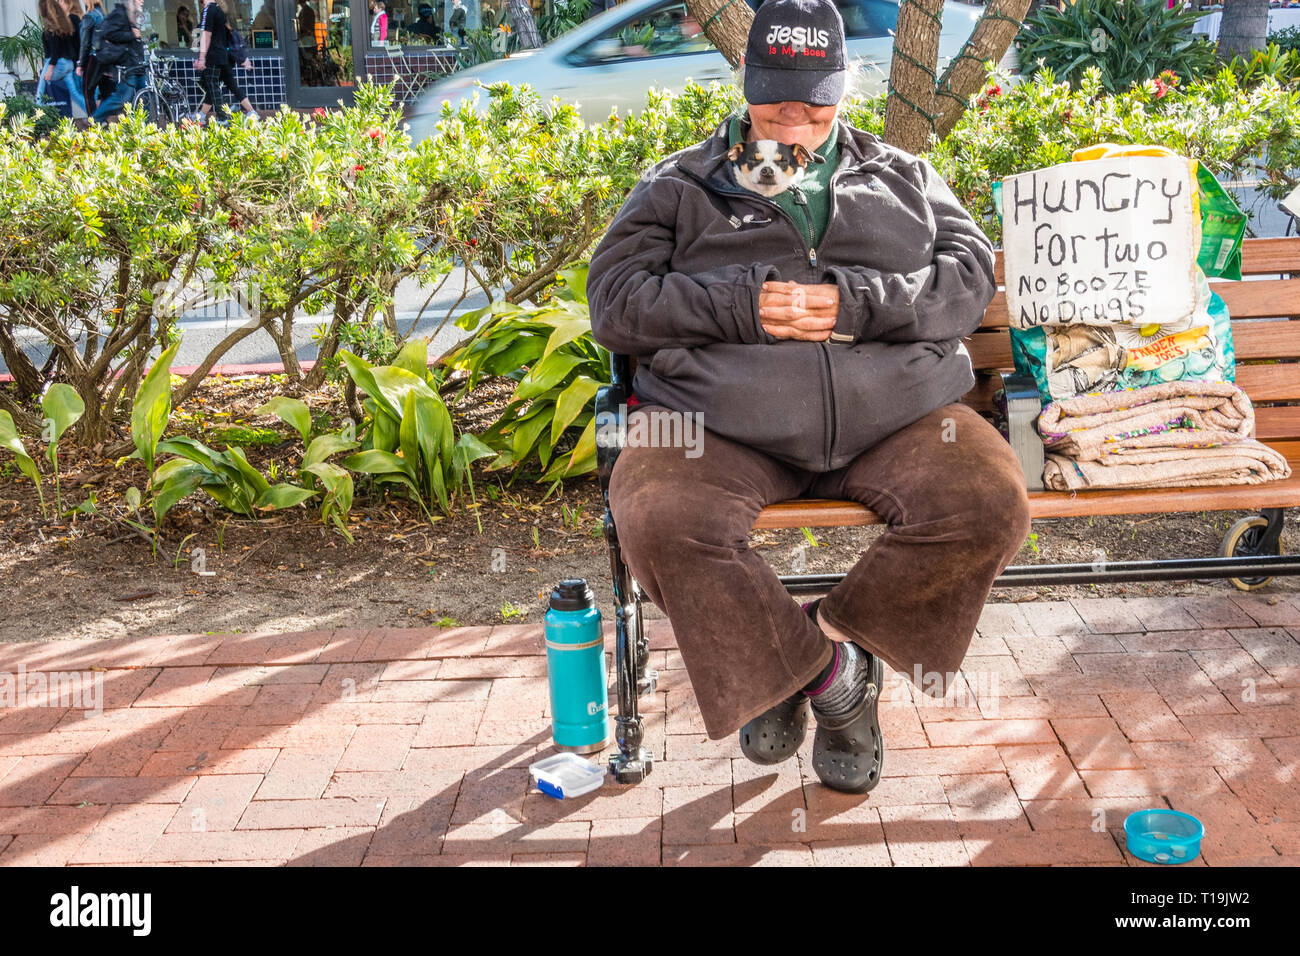 A female senior citizen beggar, with her tiny dog wrapped up close to her chest in her clothes,  sits on a city bench with a begging sign in late afte - Stock Image